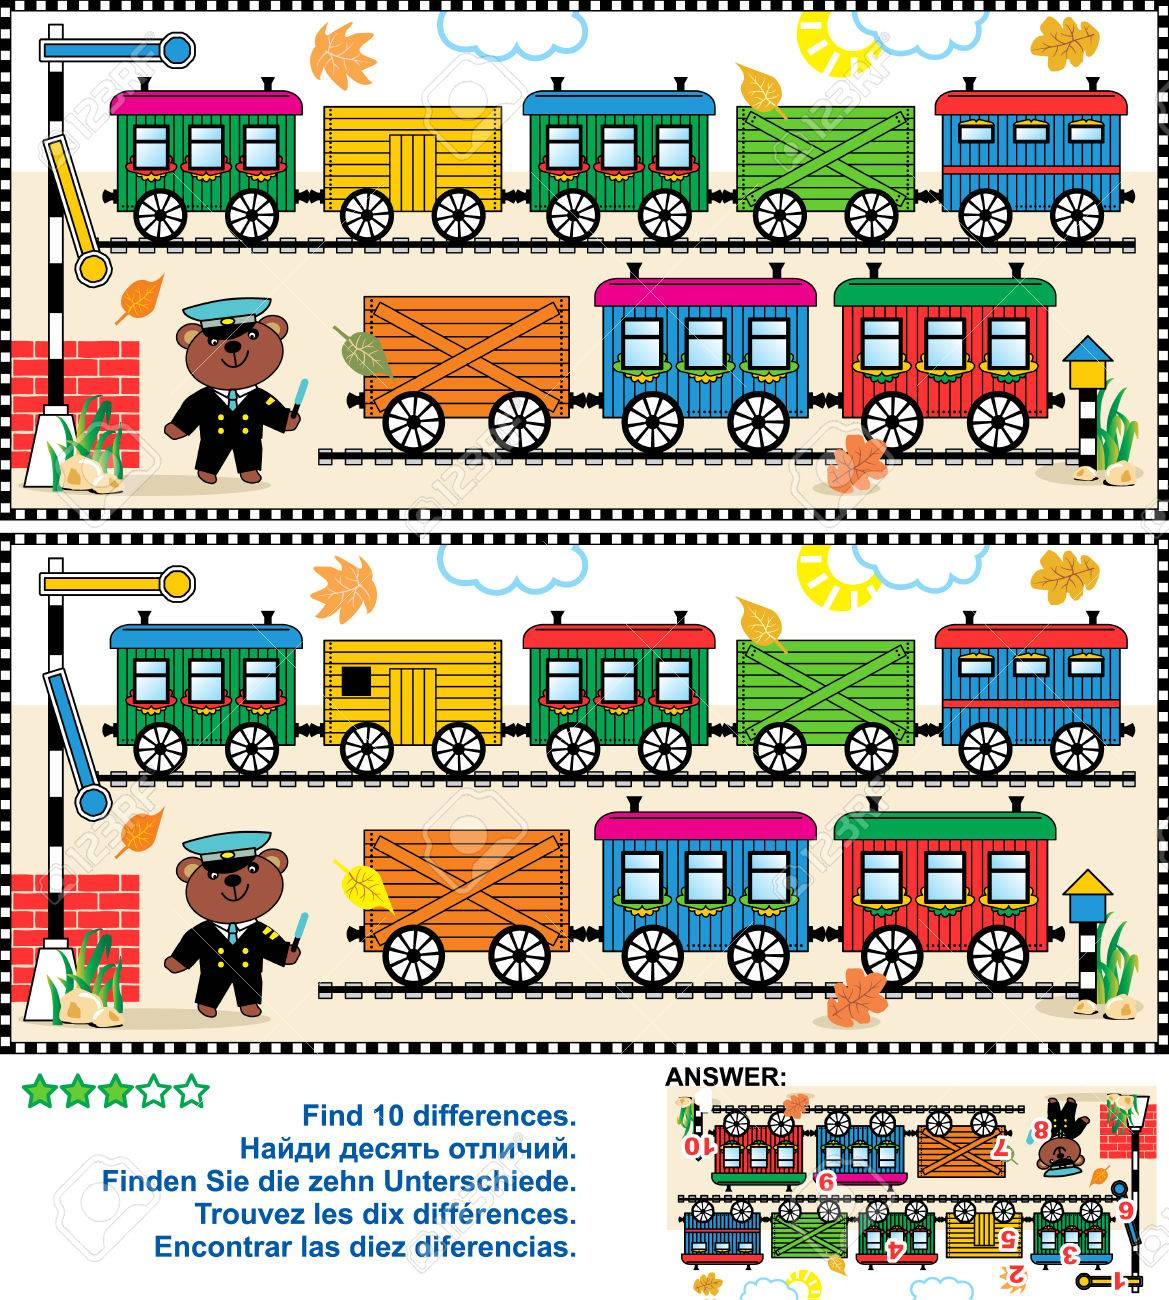 Toy train visual puzzle: Find the ten differences between the two pictures - train cars, railway, railroad roadsigns, teddy bear the railman - 38686344